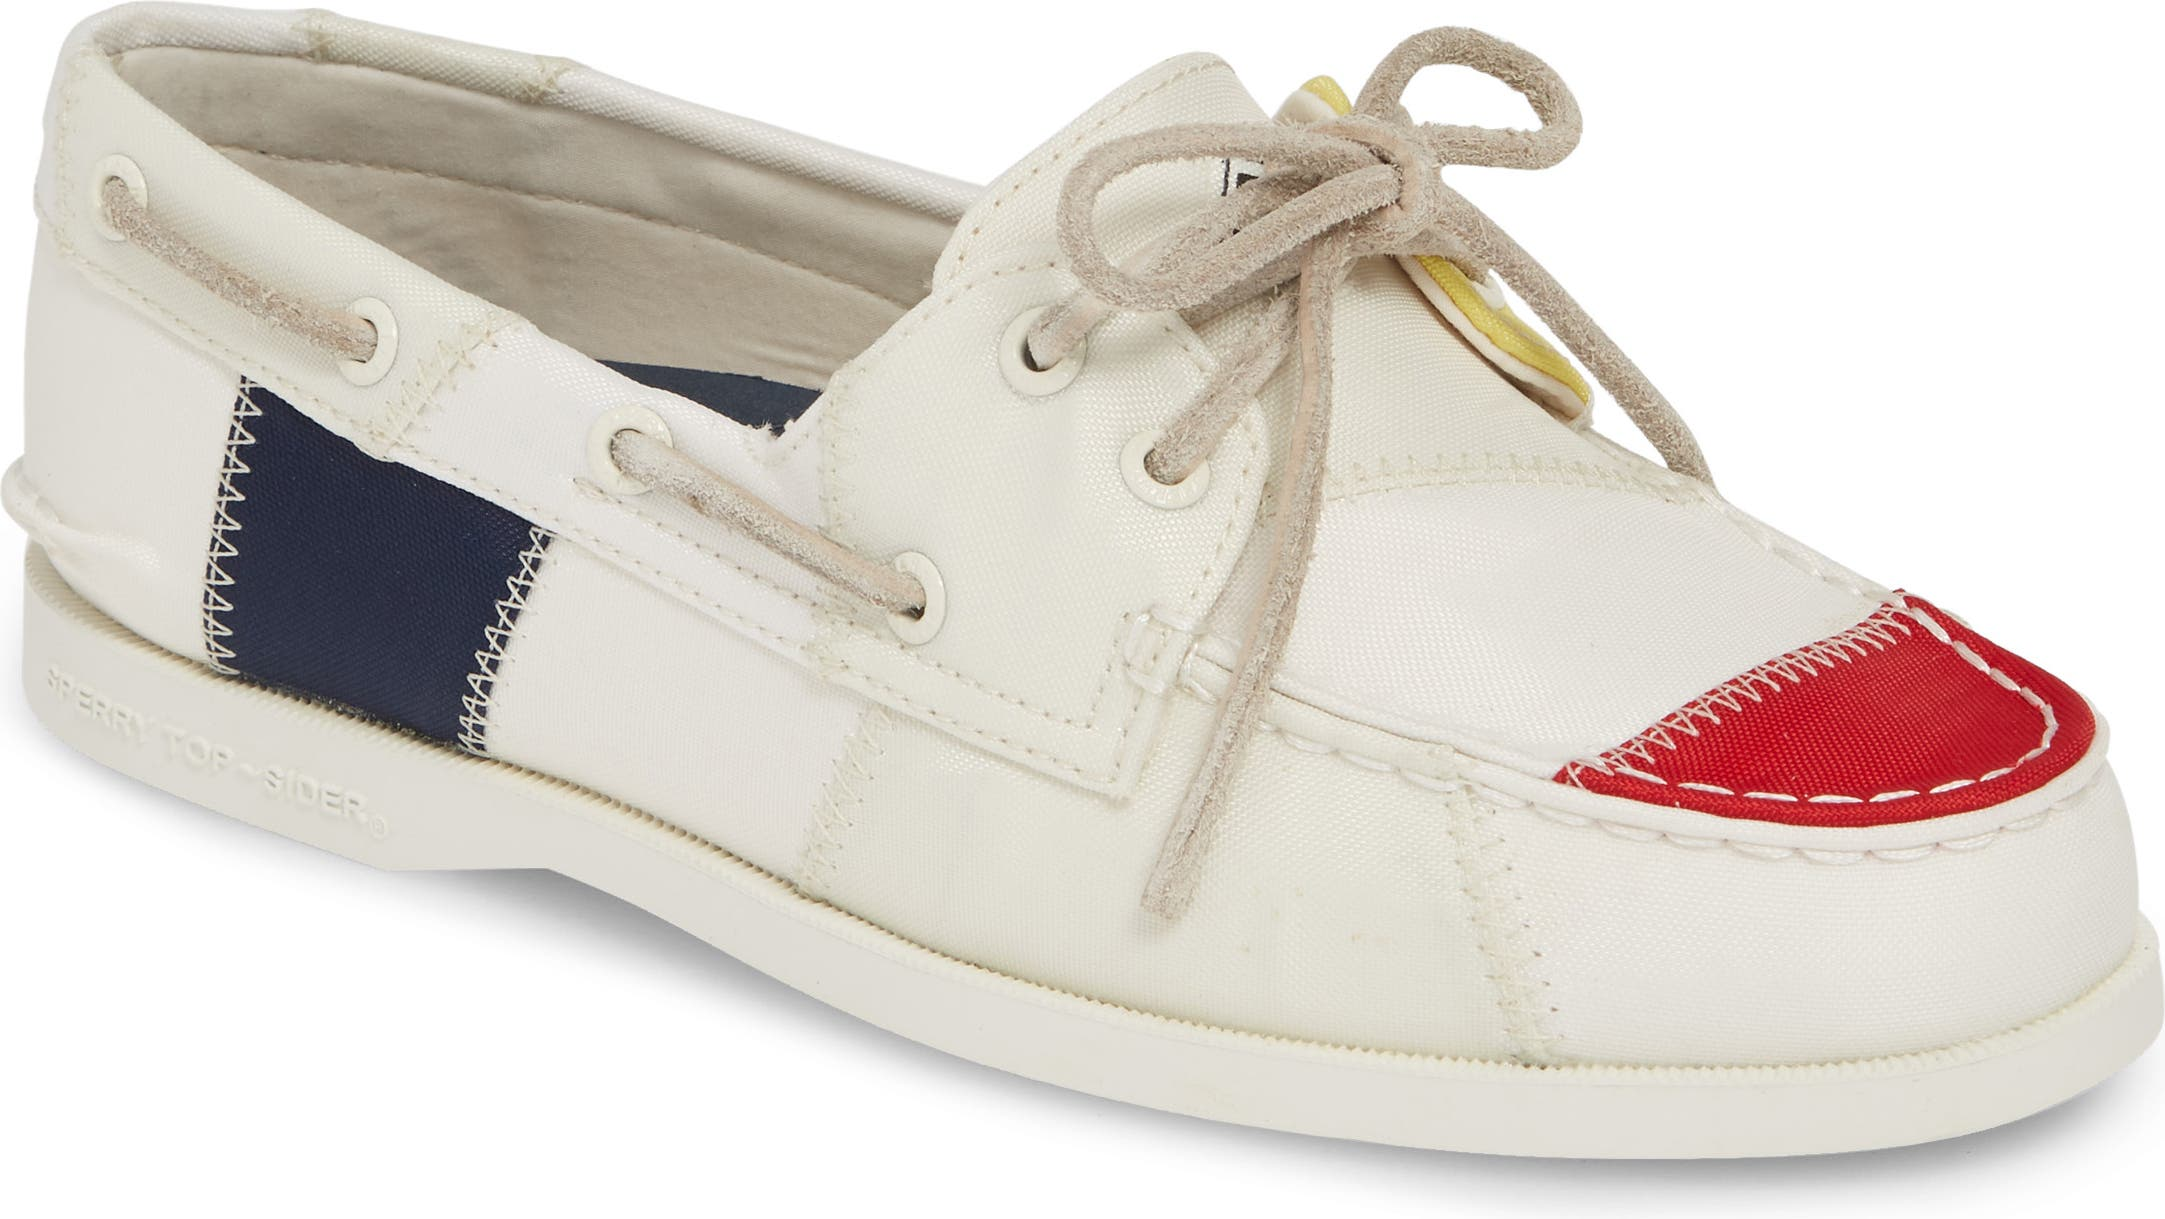 Sperry Boys Authentic Original Bionic Casual Casual Shoes Shoes,